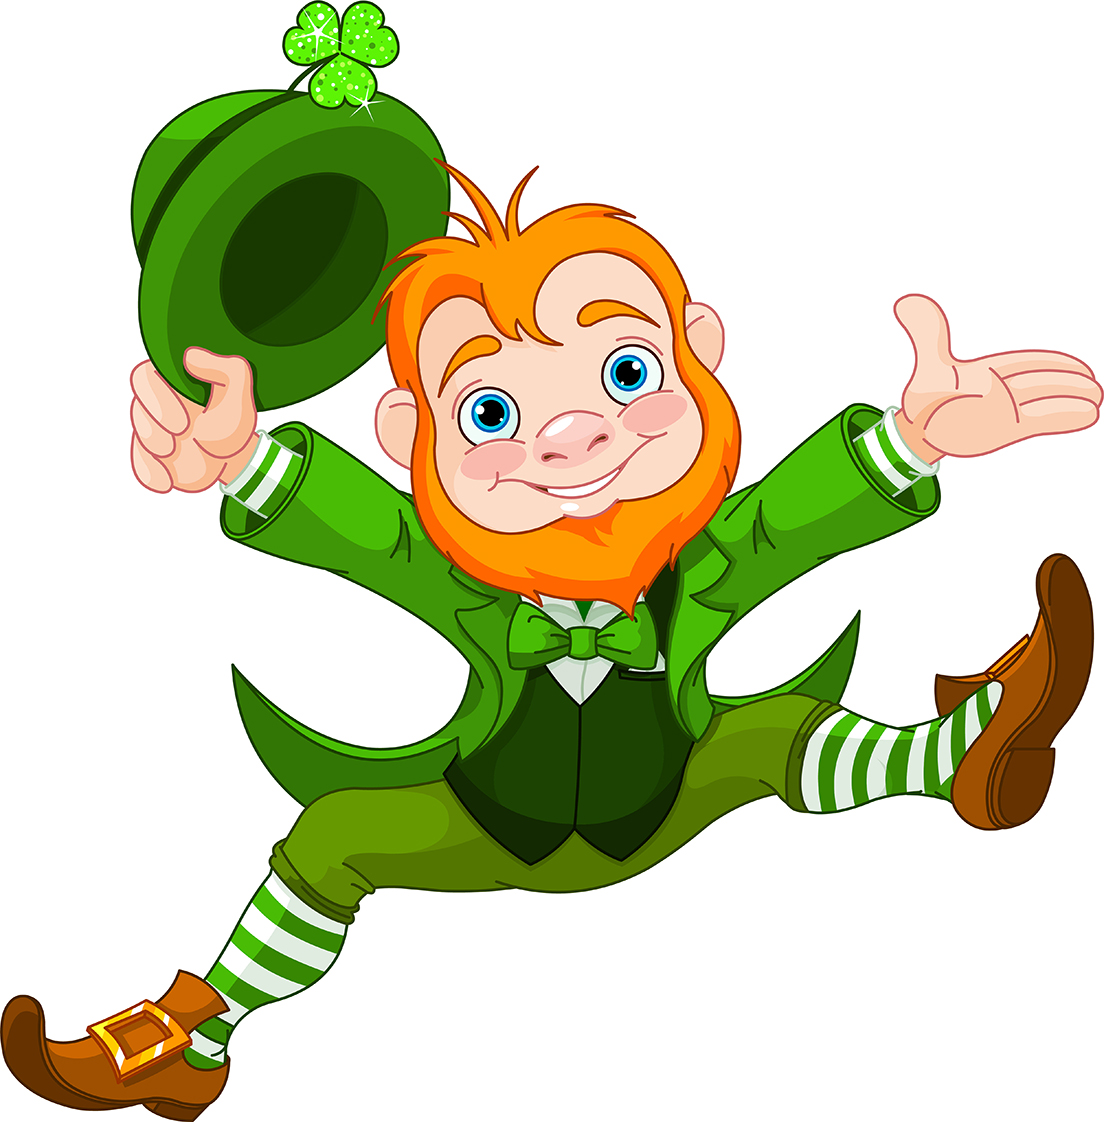 leprechaun pot of gold clipart at getdrawings com free for